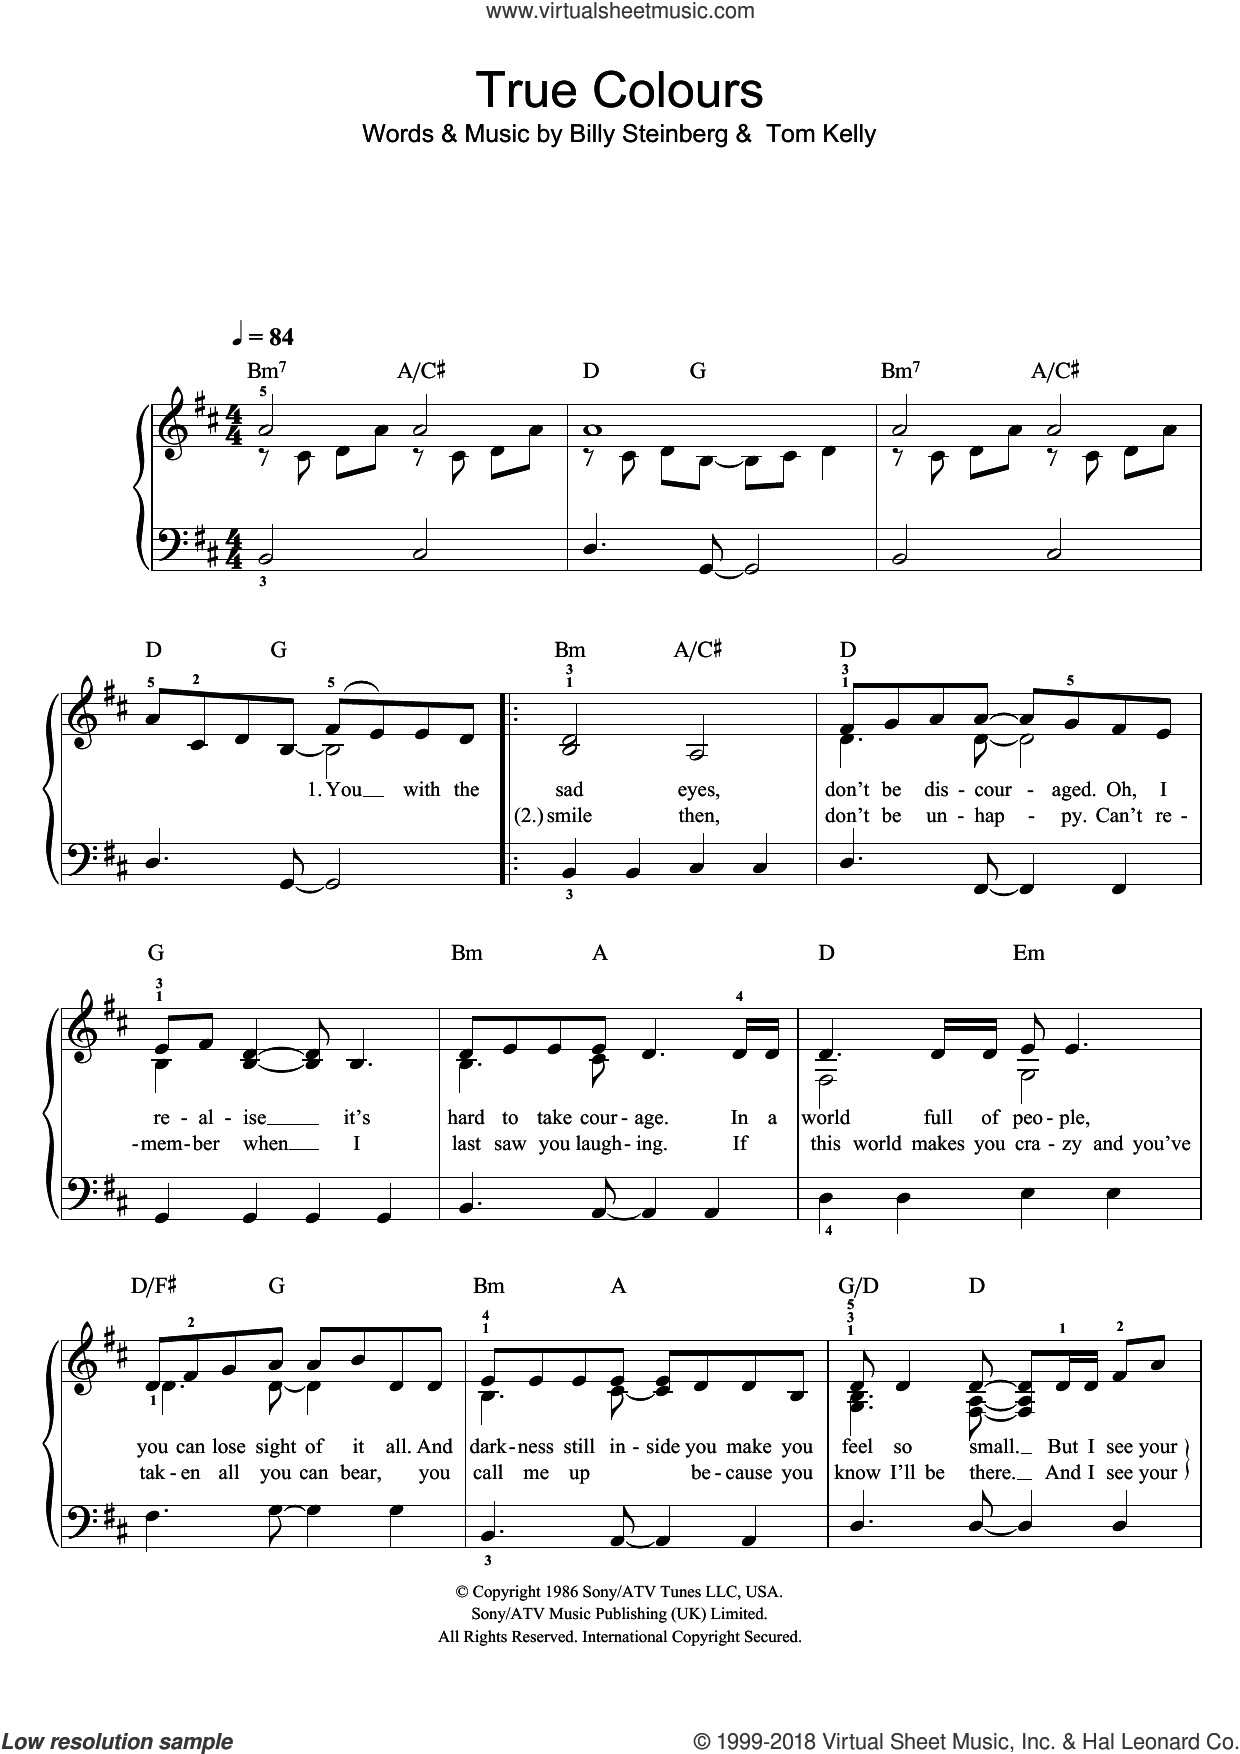 True Colors sheet music for piano solo by Tom Kelly